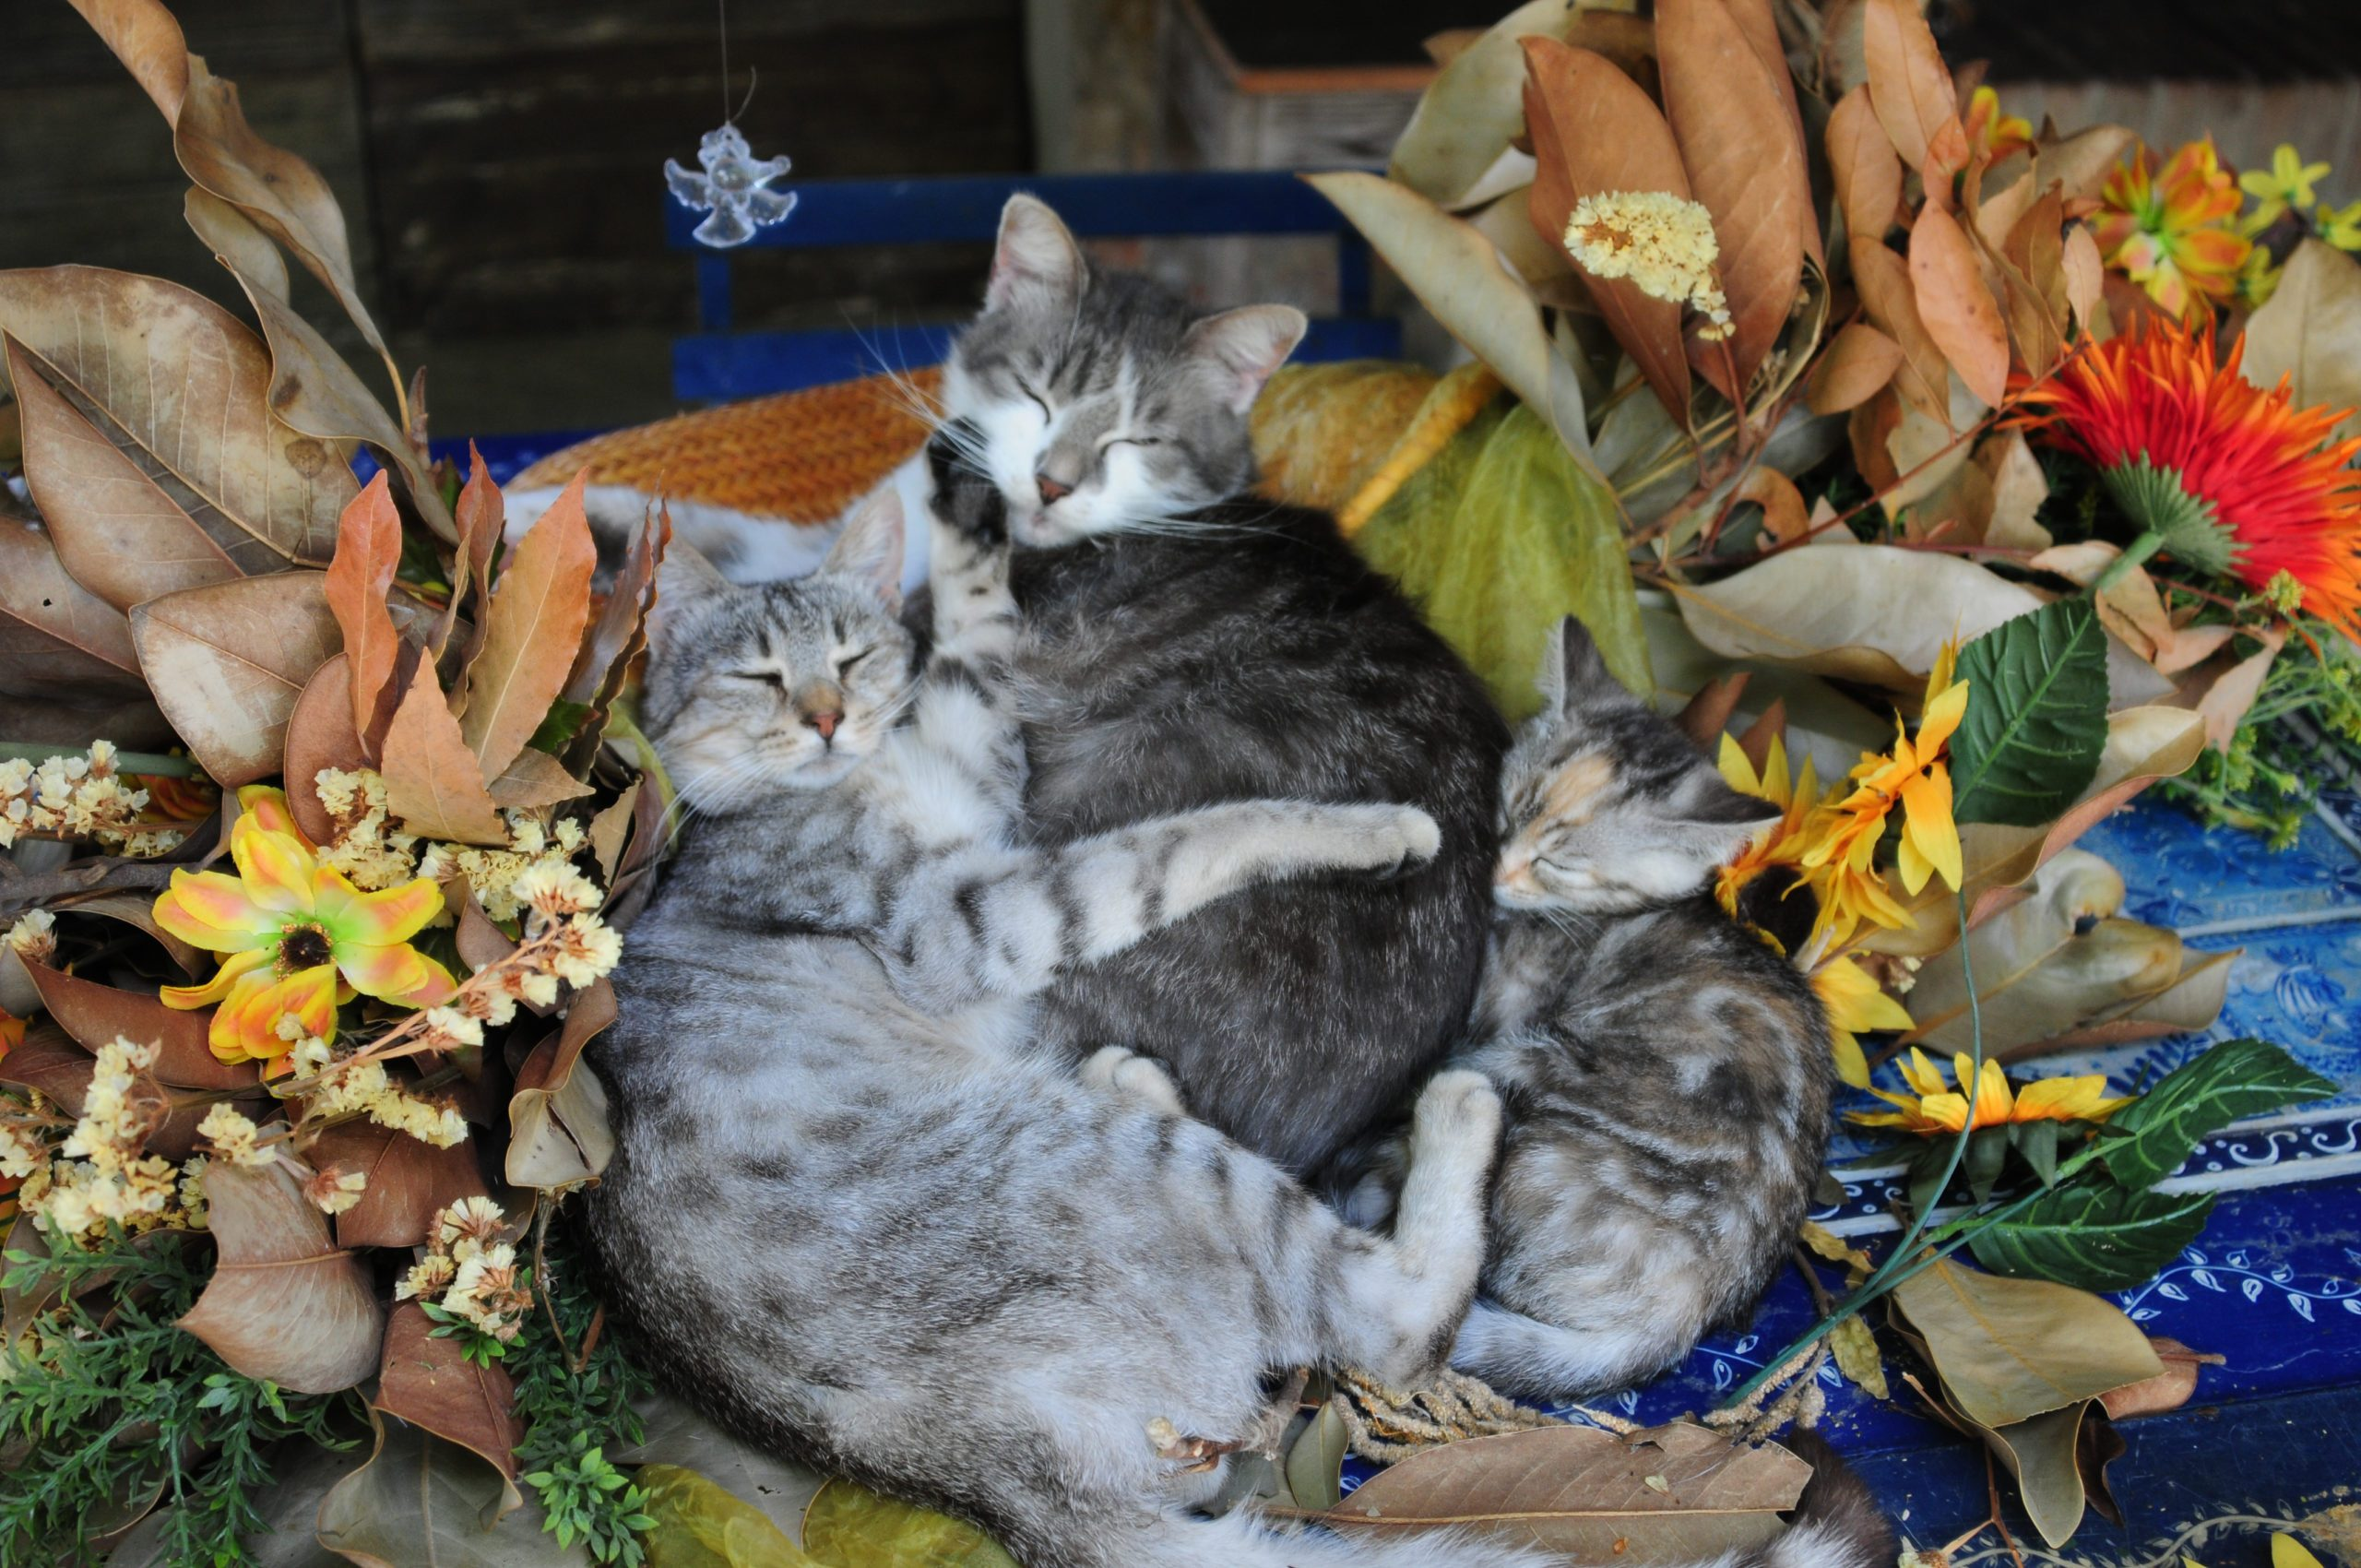 Cats sleeping on a mat among sunflowers